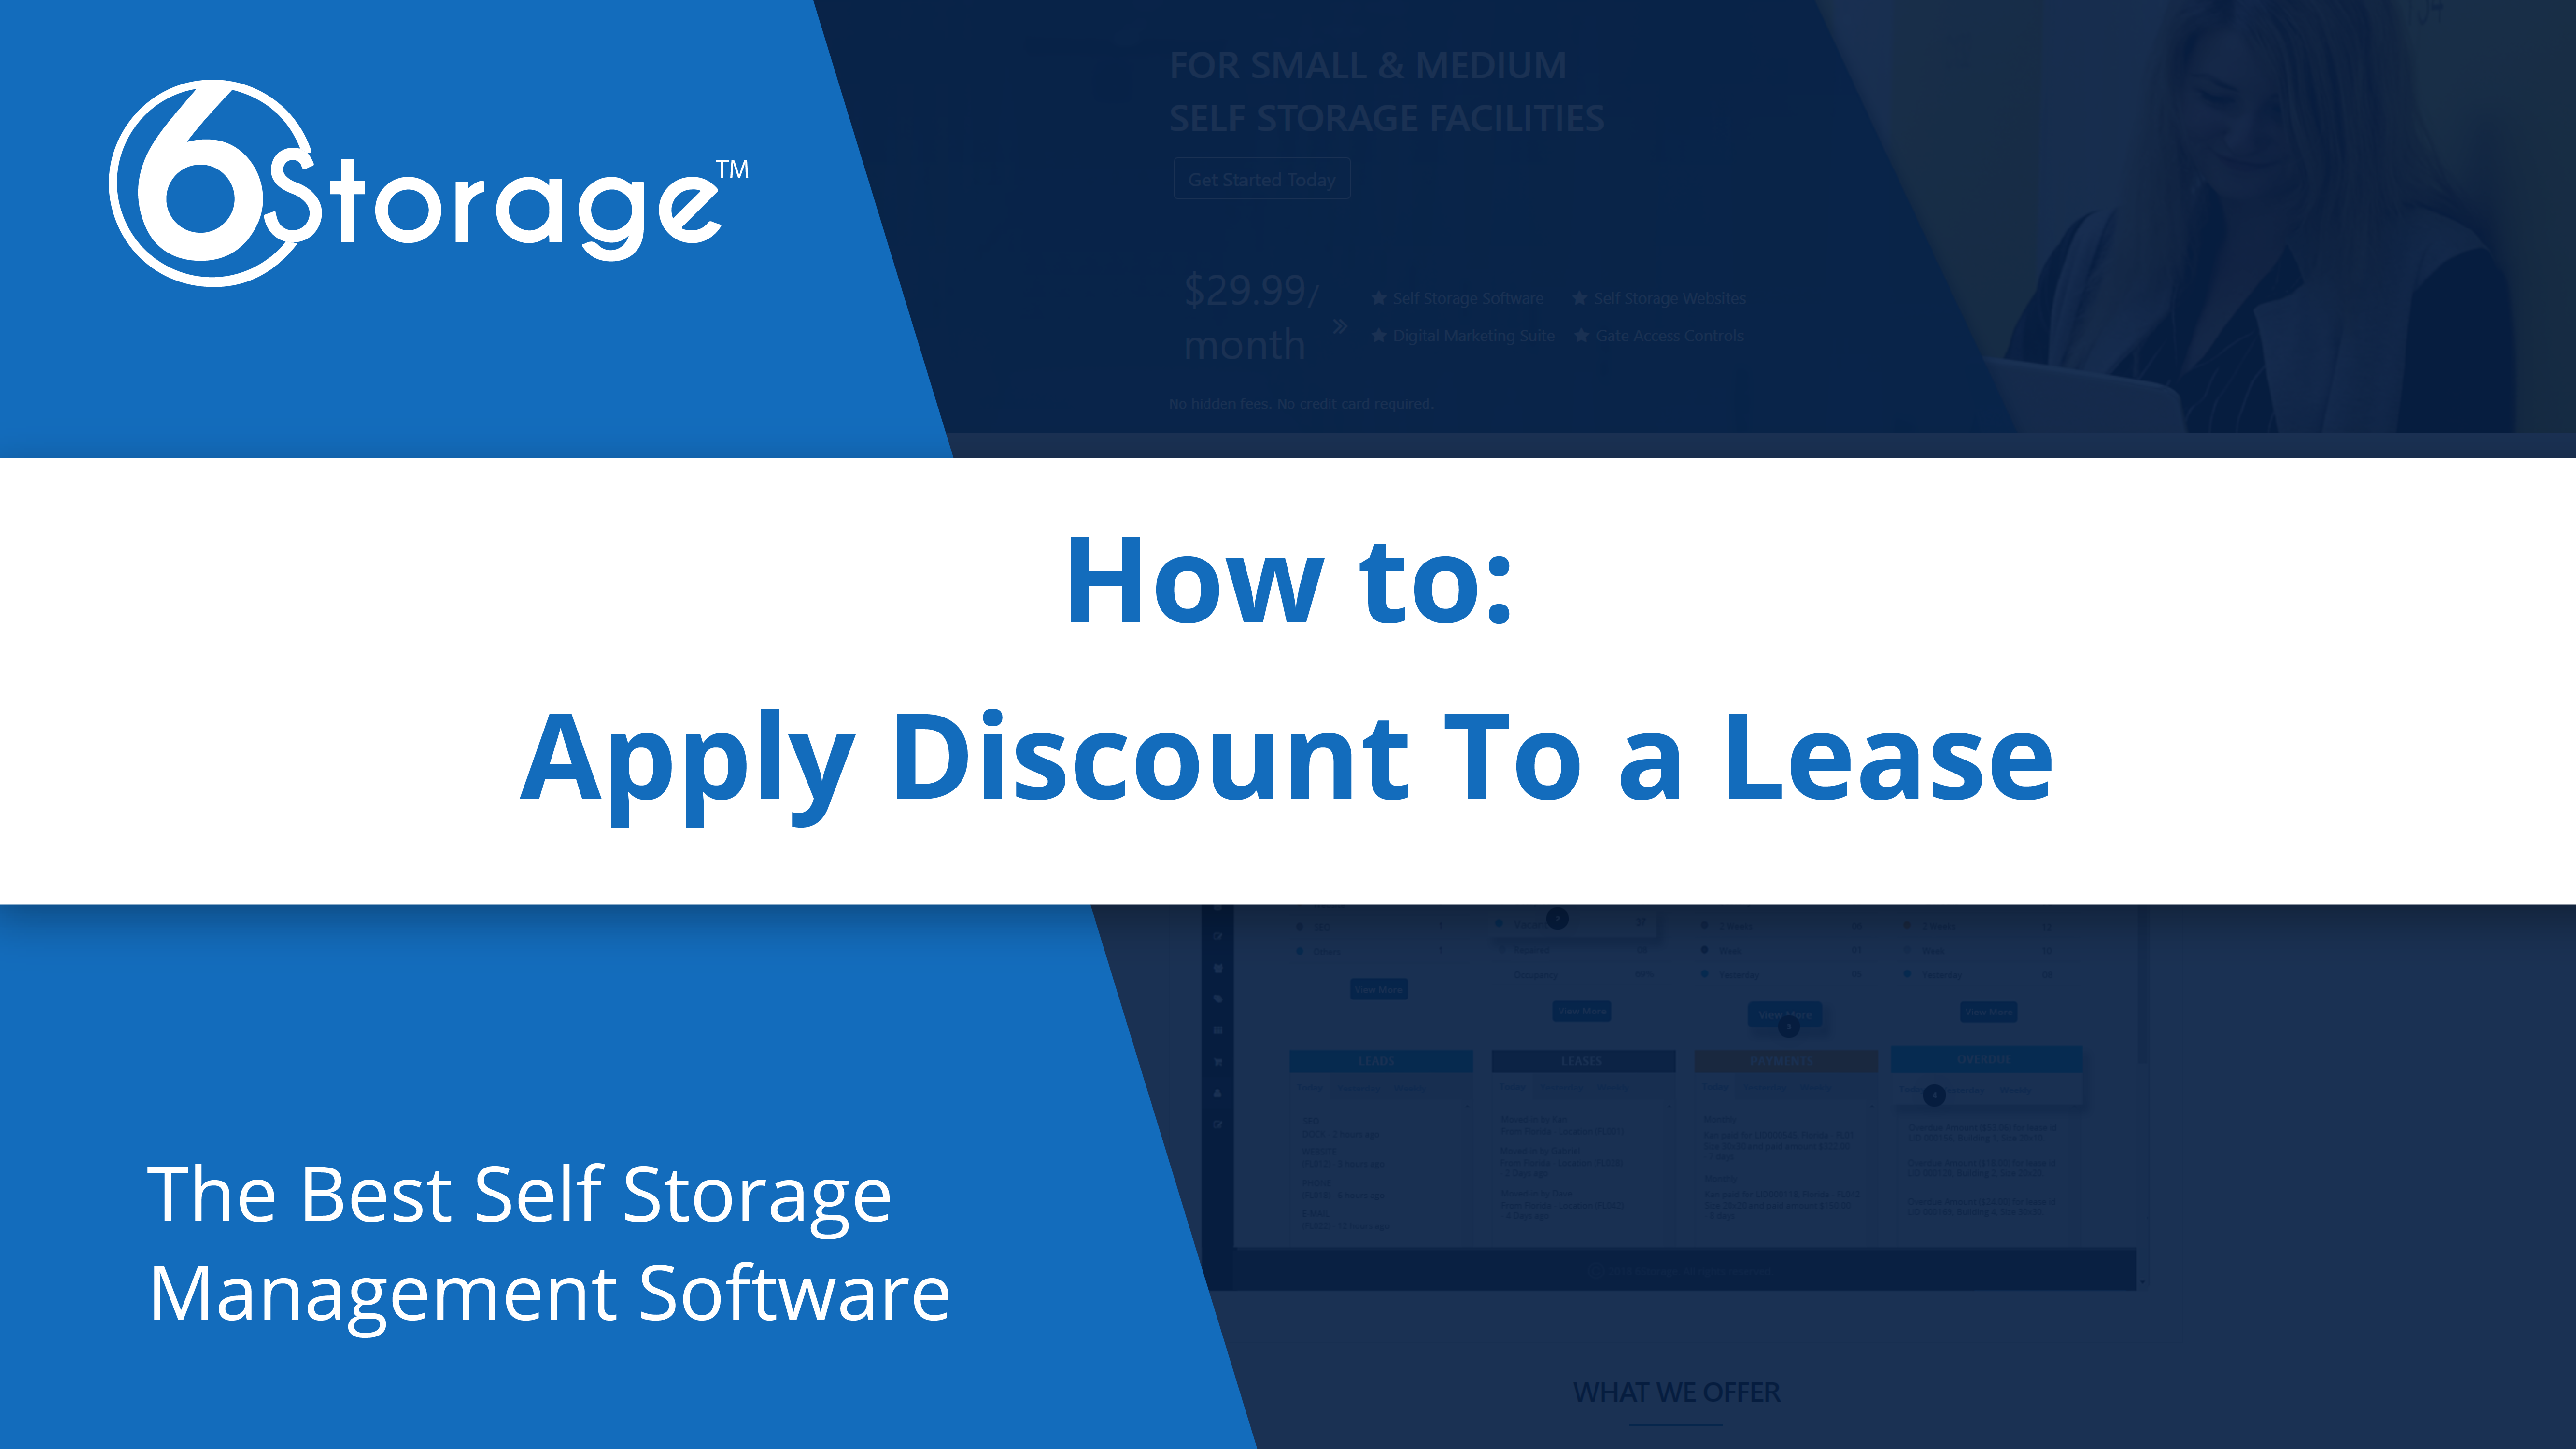 Apply Discount to Lease